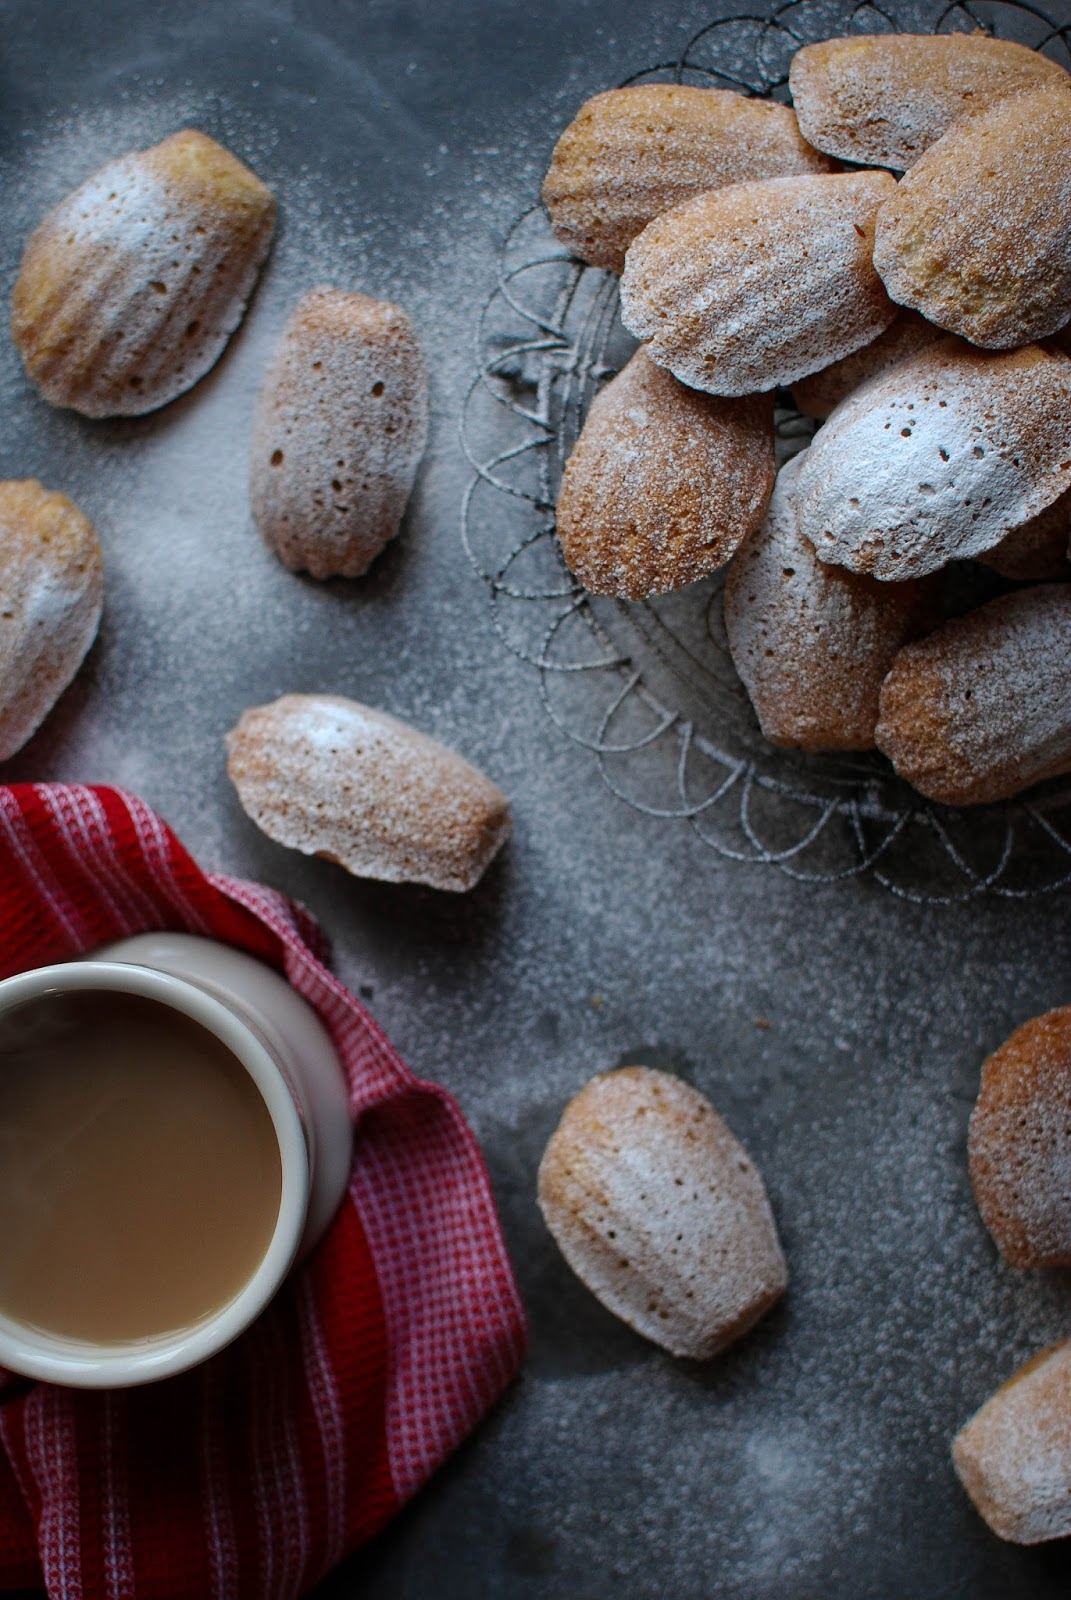 Lemon Madeleines, delicate shell shaped tea cakes perfect for dipping in your cuppa.